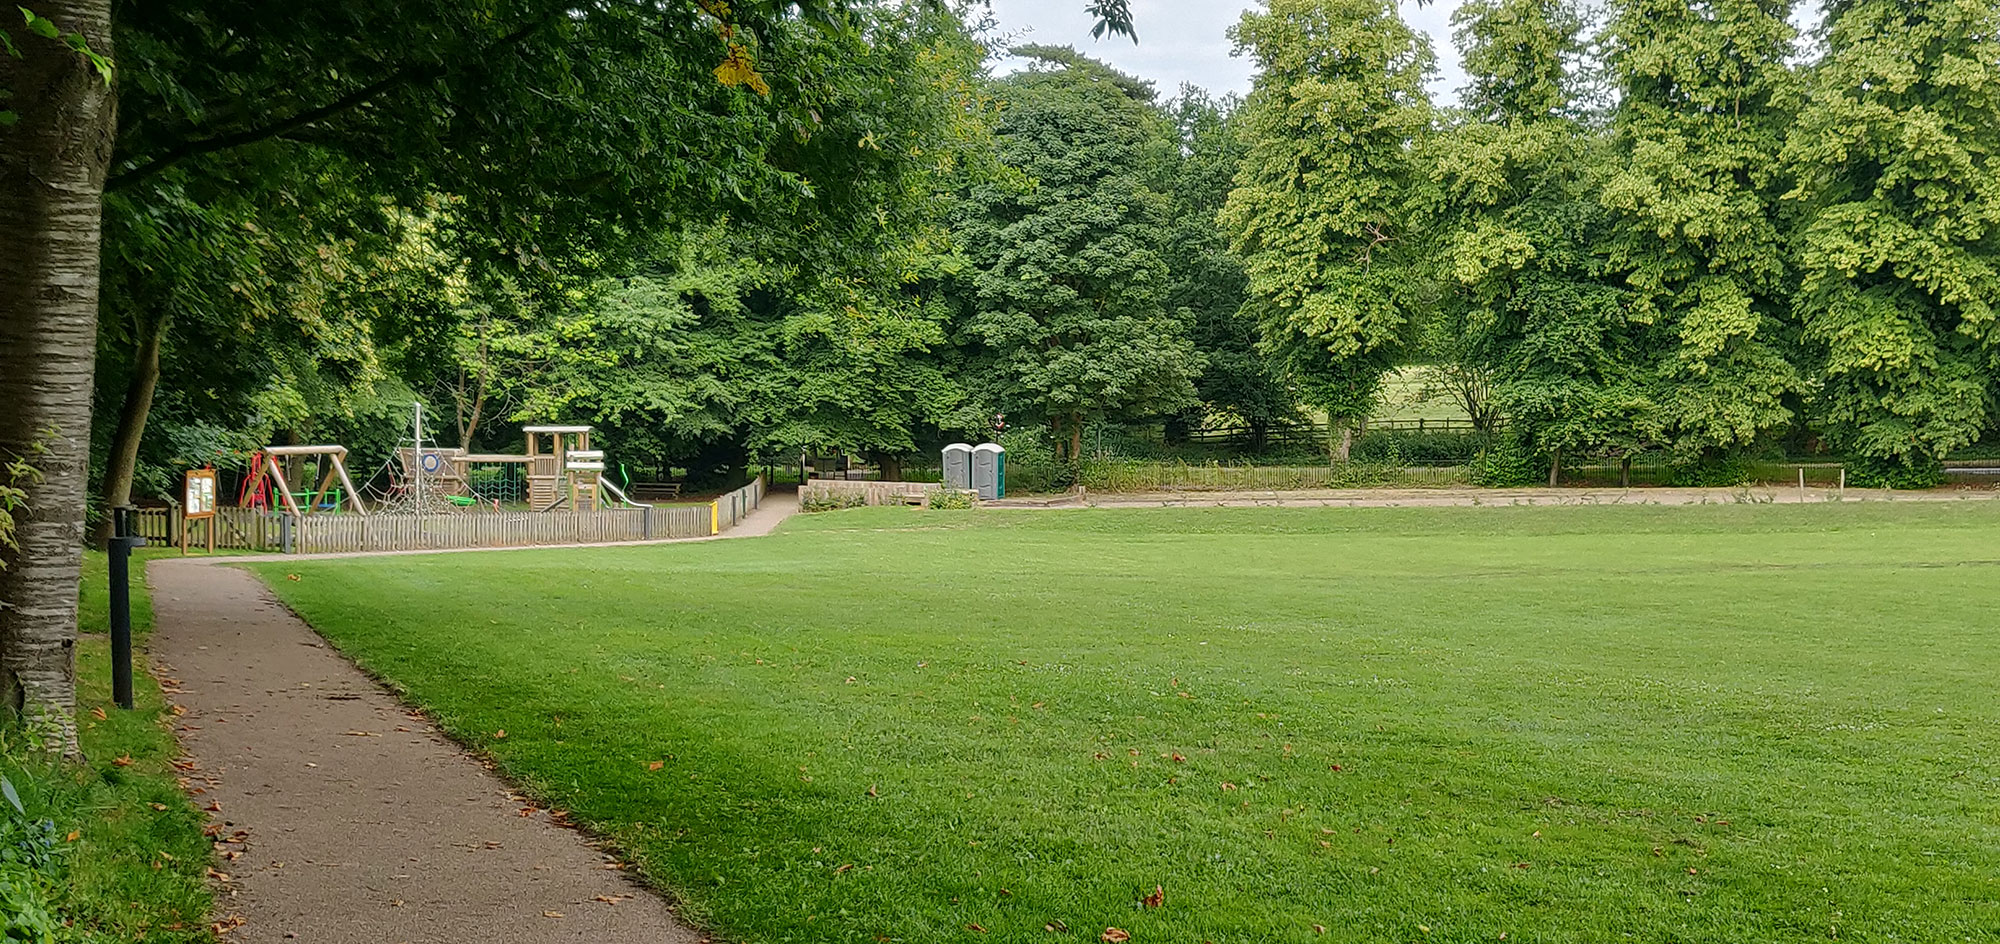 Ightham recreation ground playground